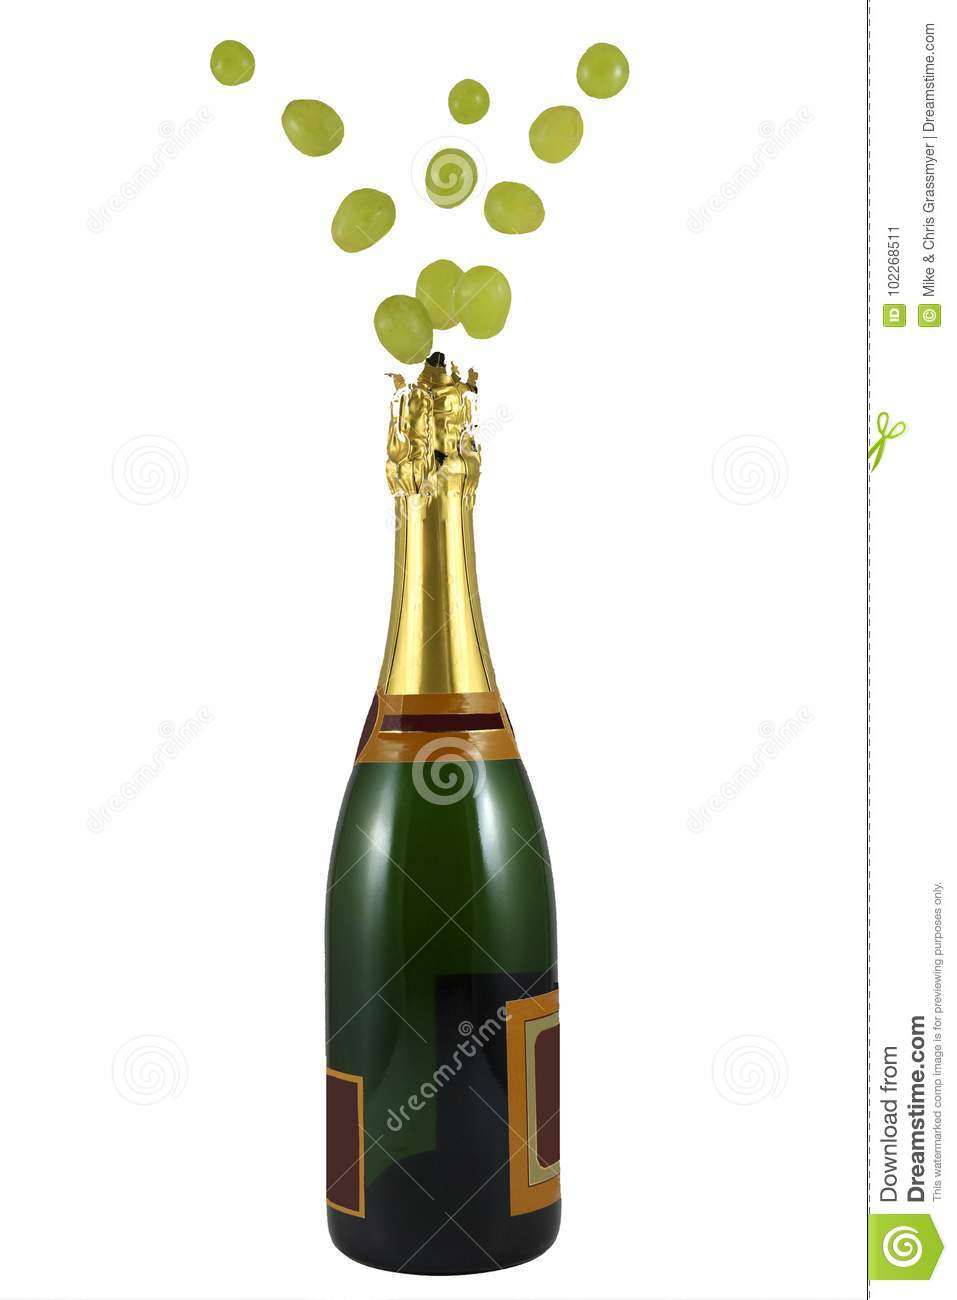 CHAMPAGNE GRATUITO DOWNLOAD O ESTOURA